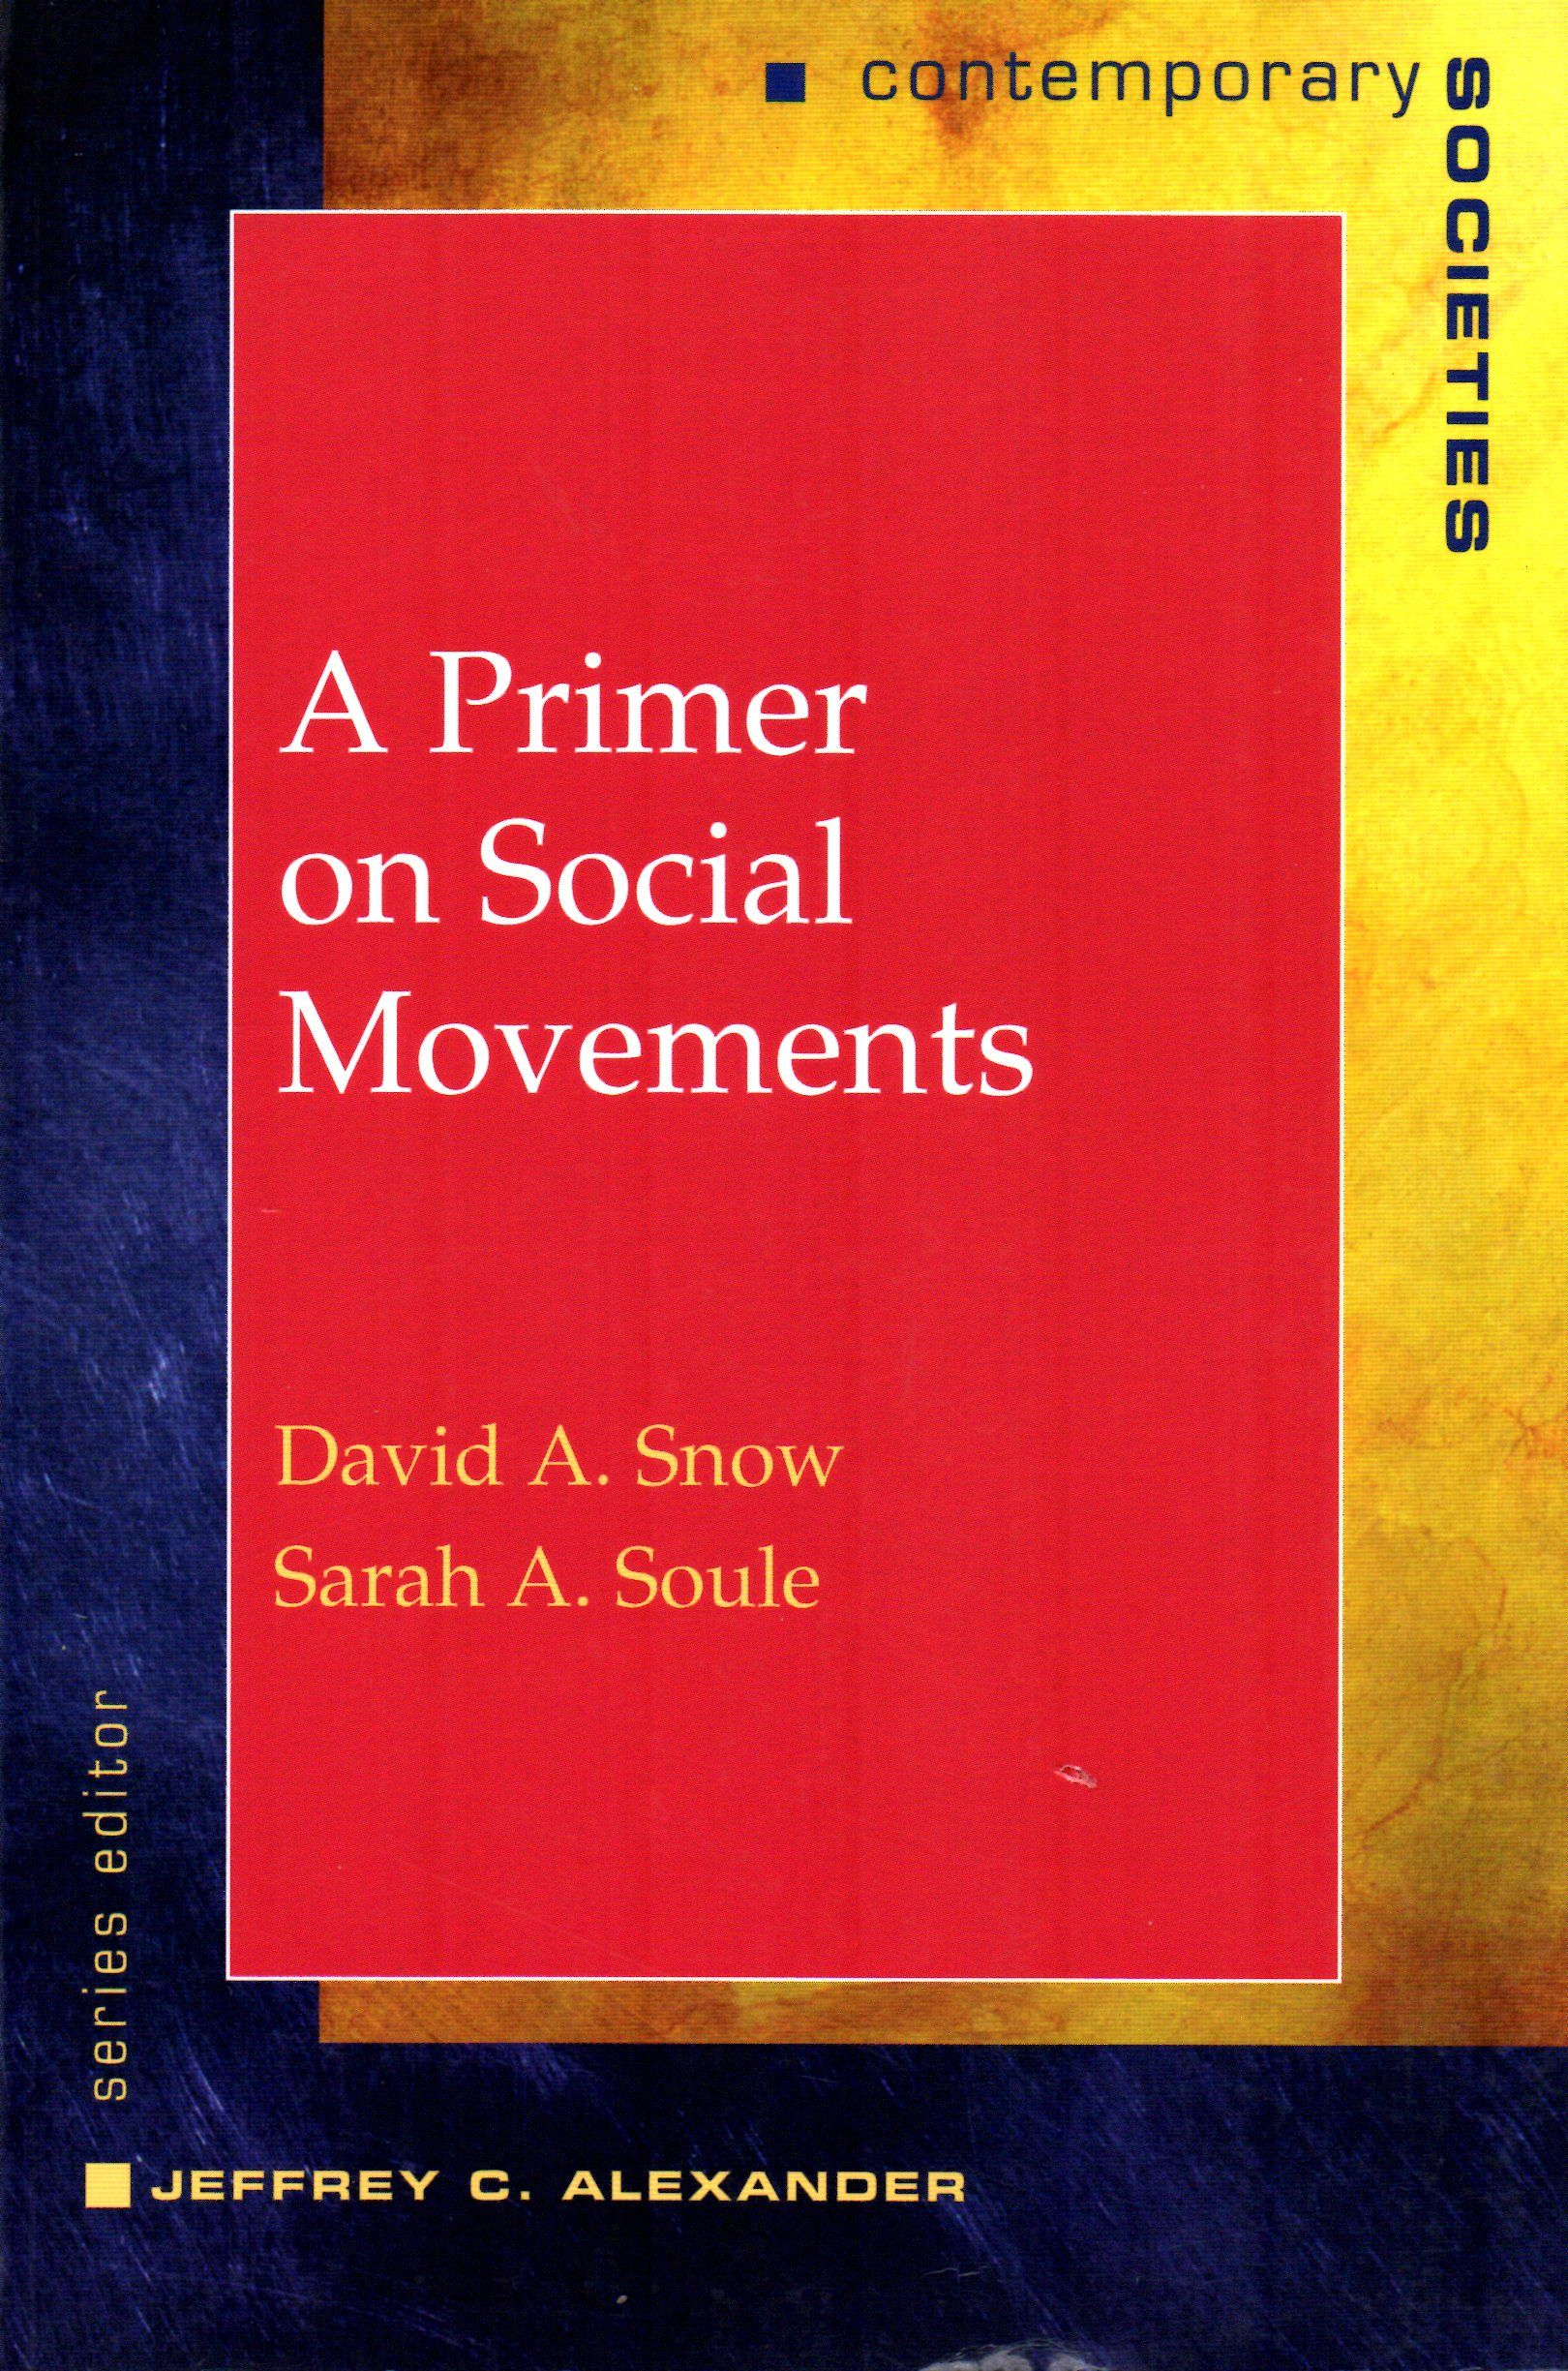 A primer on social movements David A. Snow and Sarah A. Soule.(W.W. Norton & Company, 2010, cop. 2010) / HM 881 S62   Cita bibliográfica: http://www.worldcat.org/title/primer-on-social-movements/oclc/471494508?page=citation